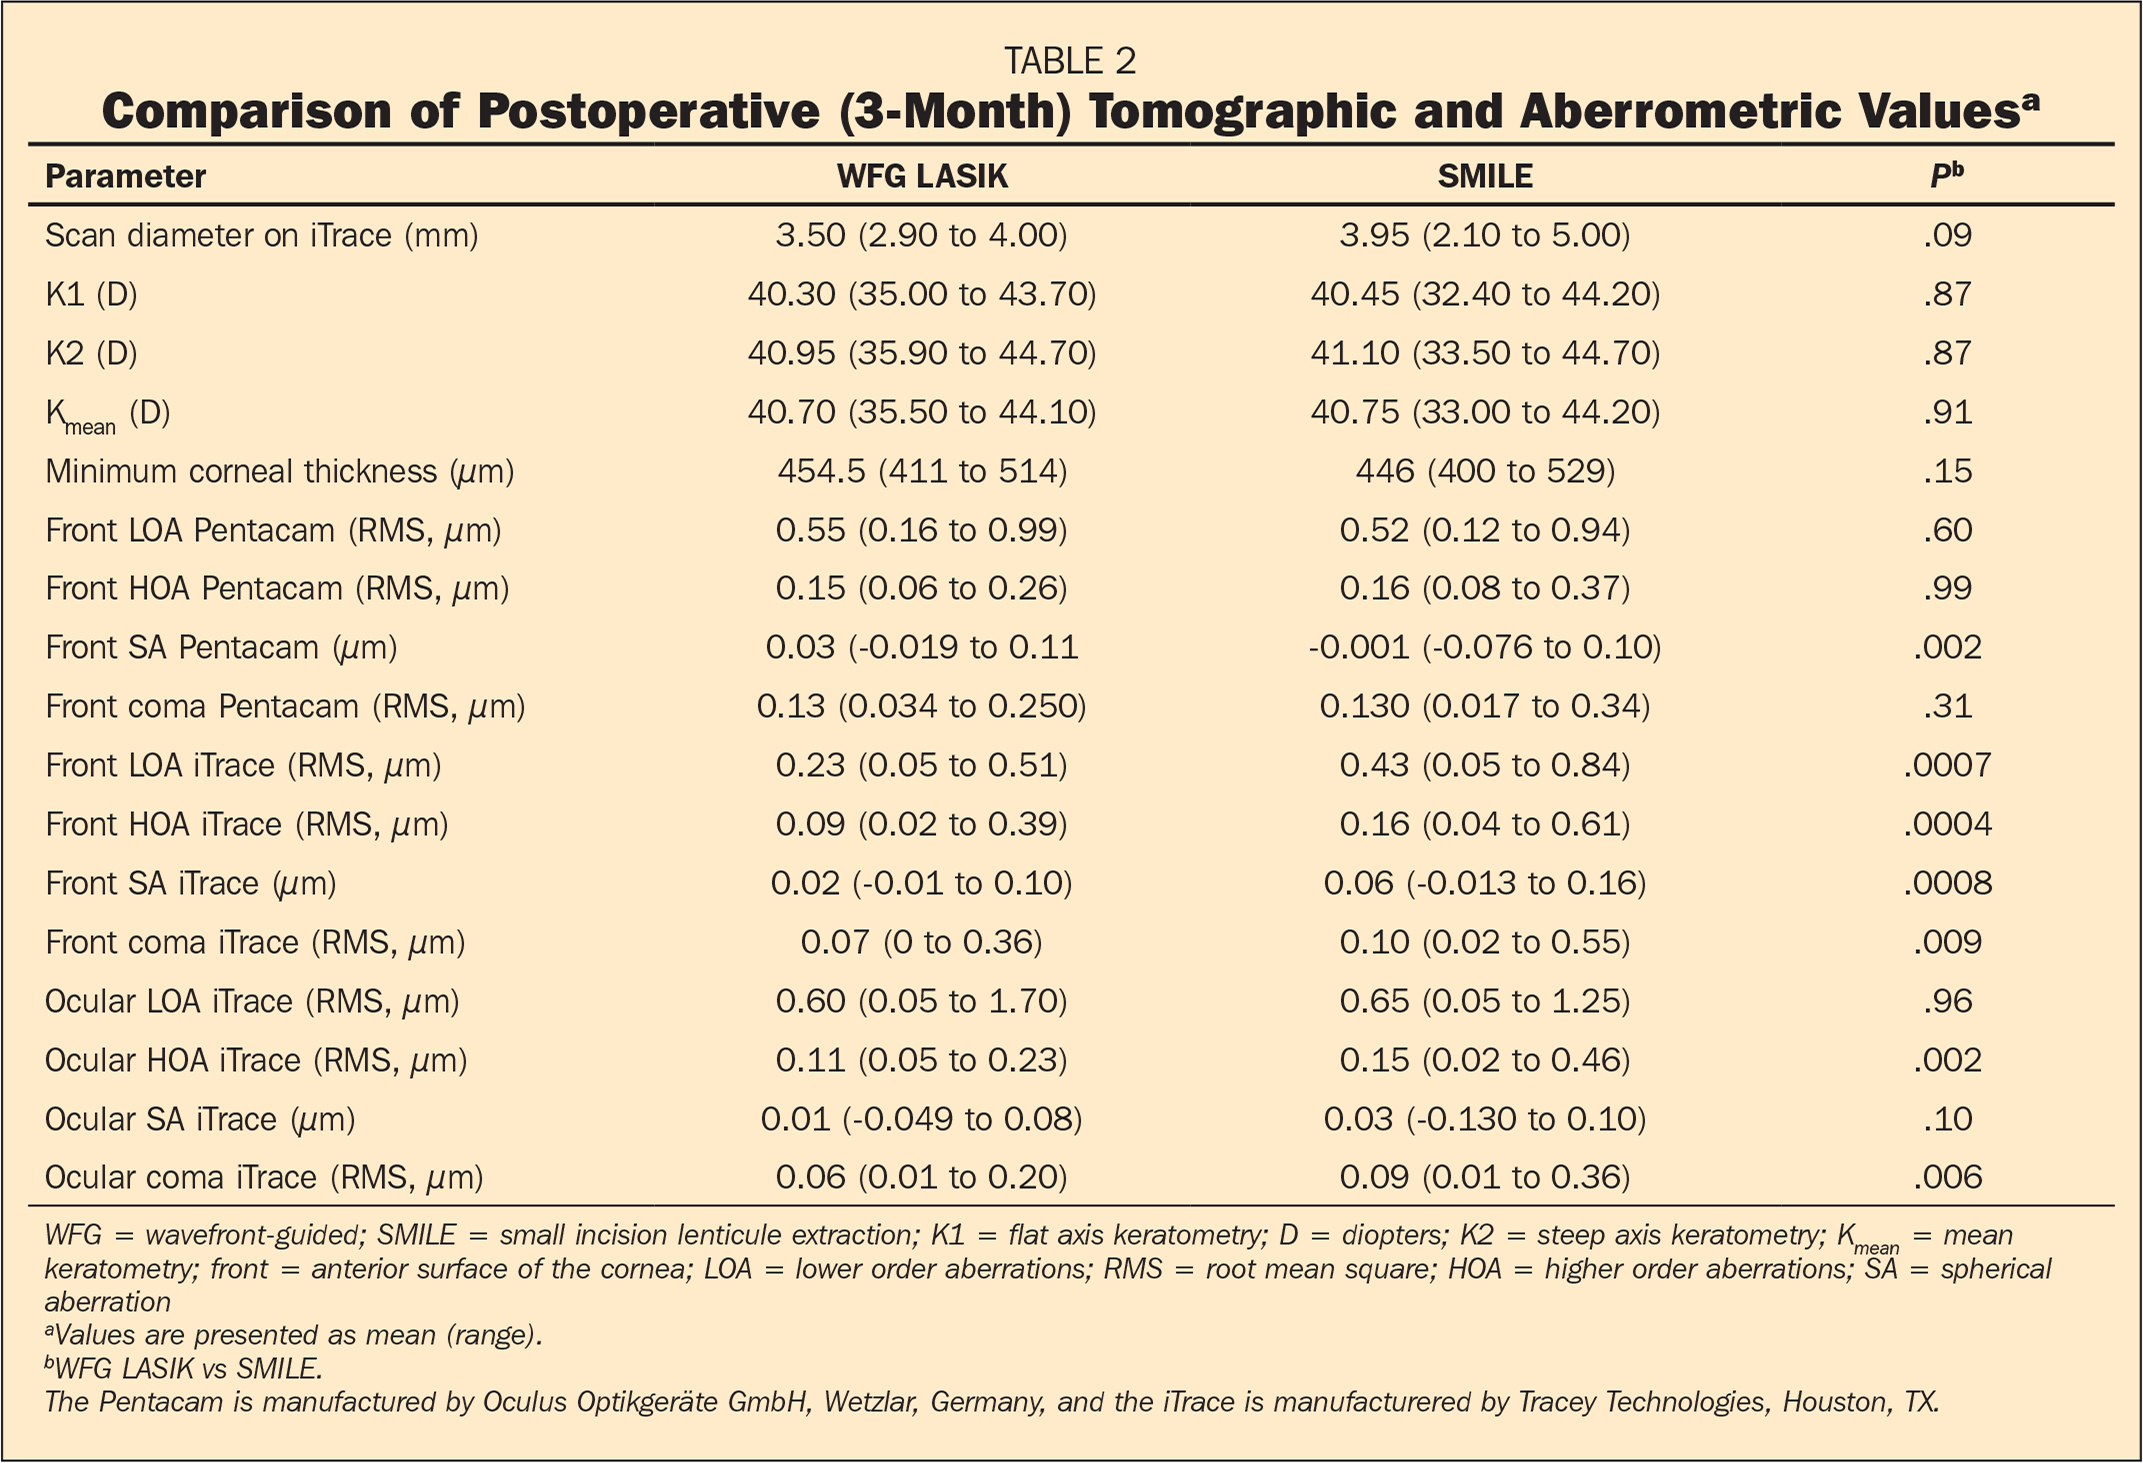 Comparison of Postoperative (3-Month) Tomographic and Aberrometric Valuesa